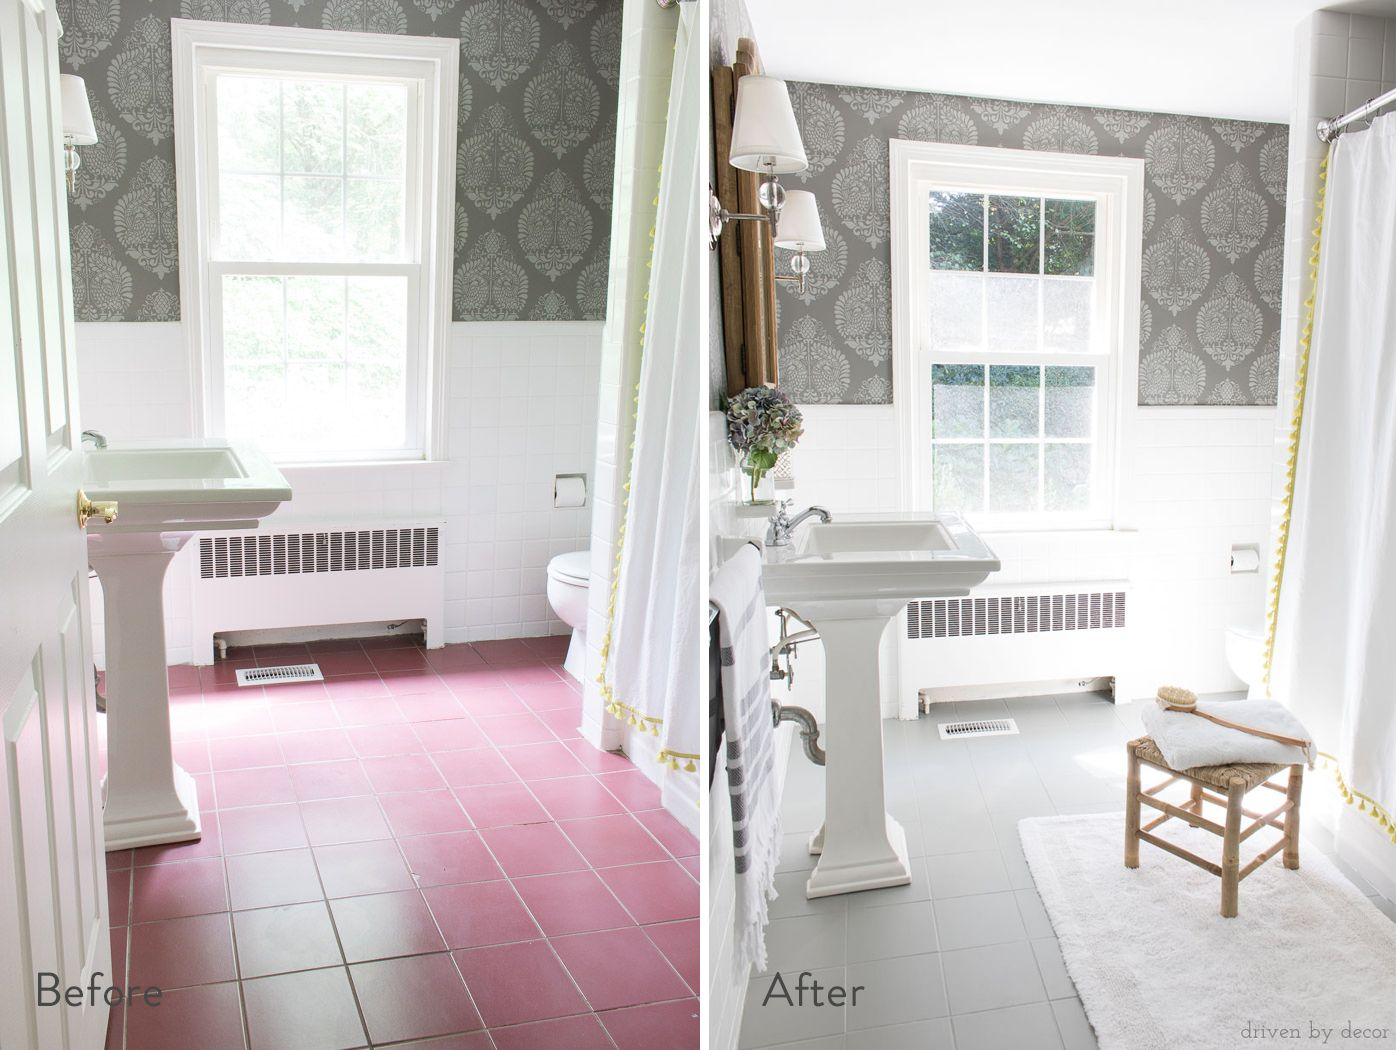 How To Build Diy Floating Shelves 7 Different Ways Painting Tile Floors Painting Tile Tile Floor Diy